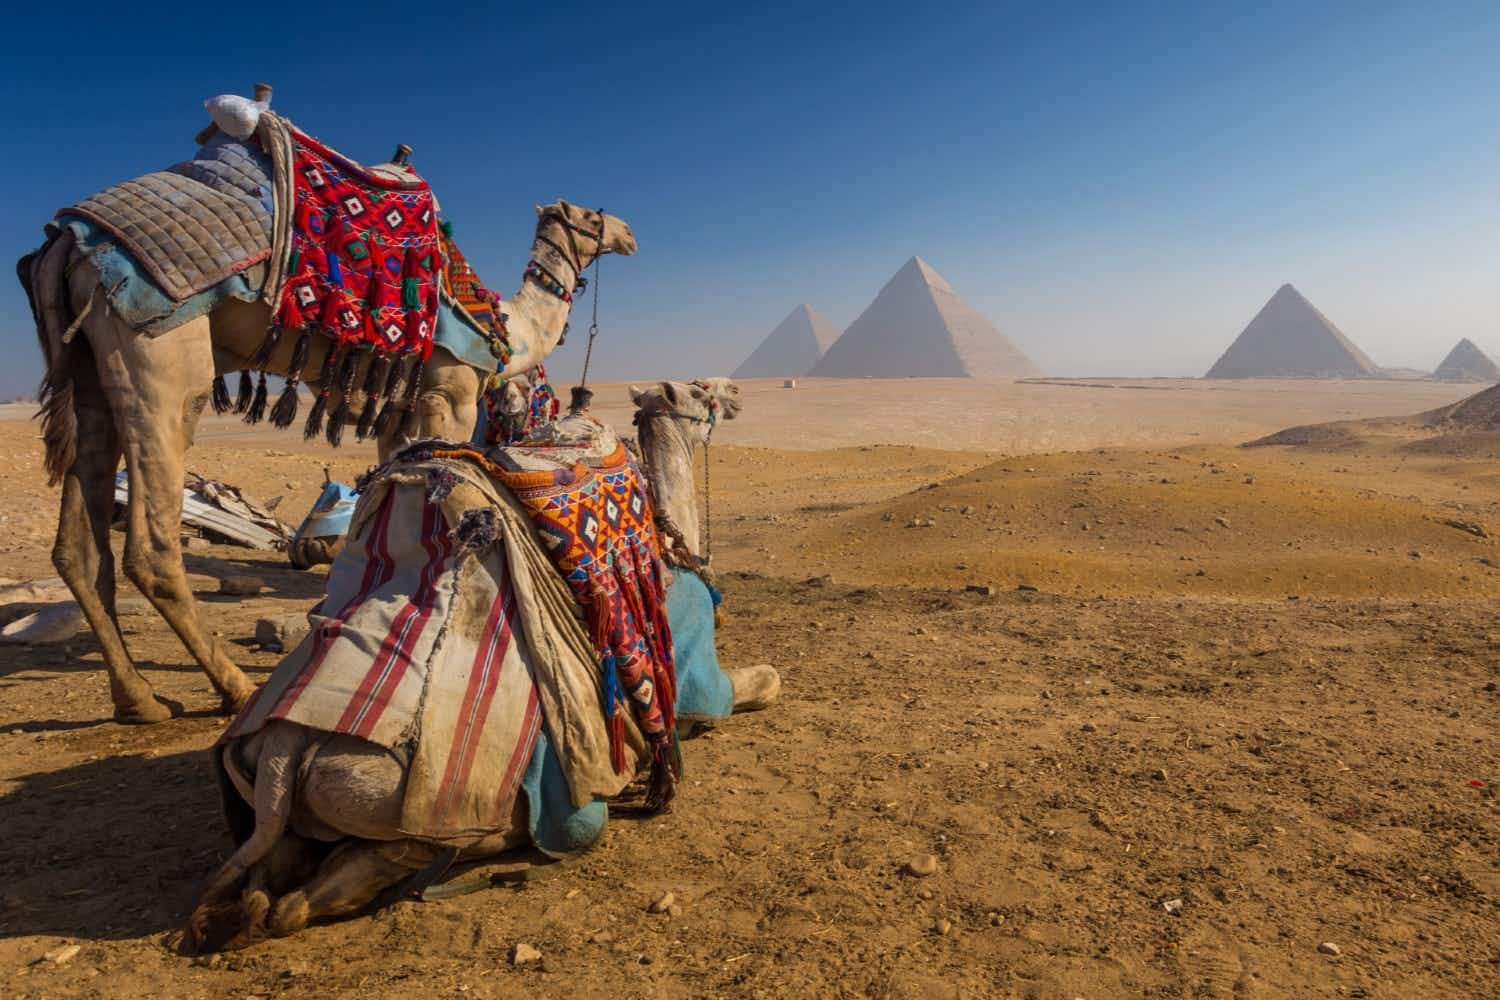 Researchers have discovered a large void in the Great Pyramid of Giza